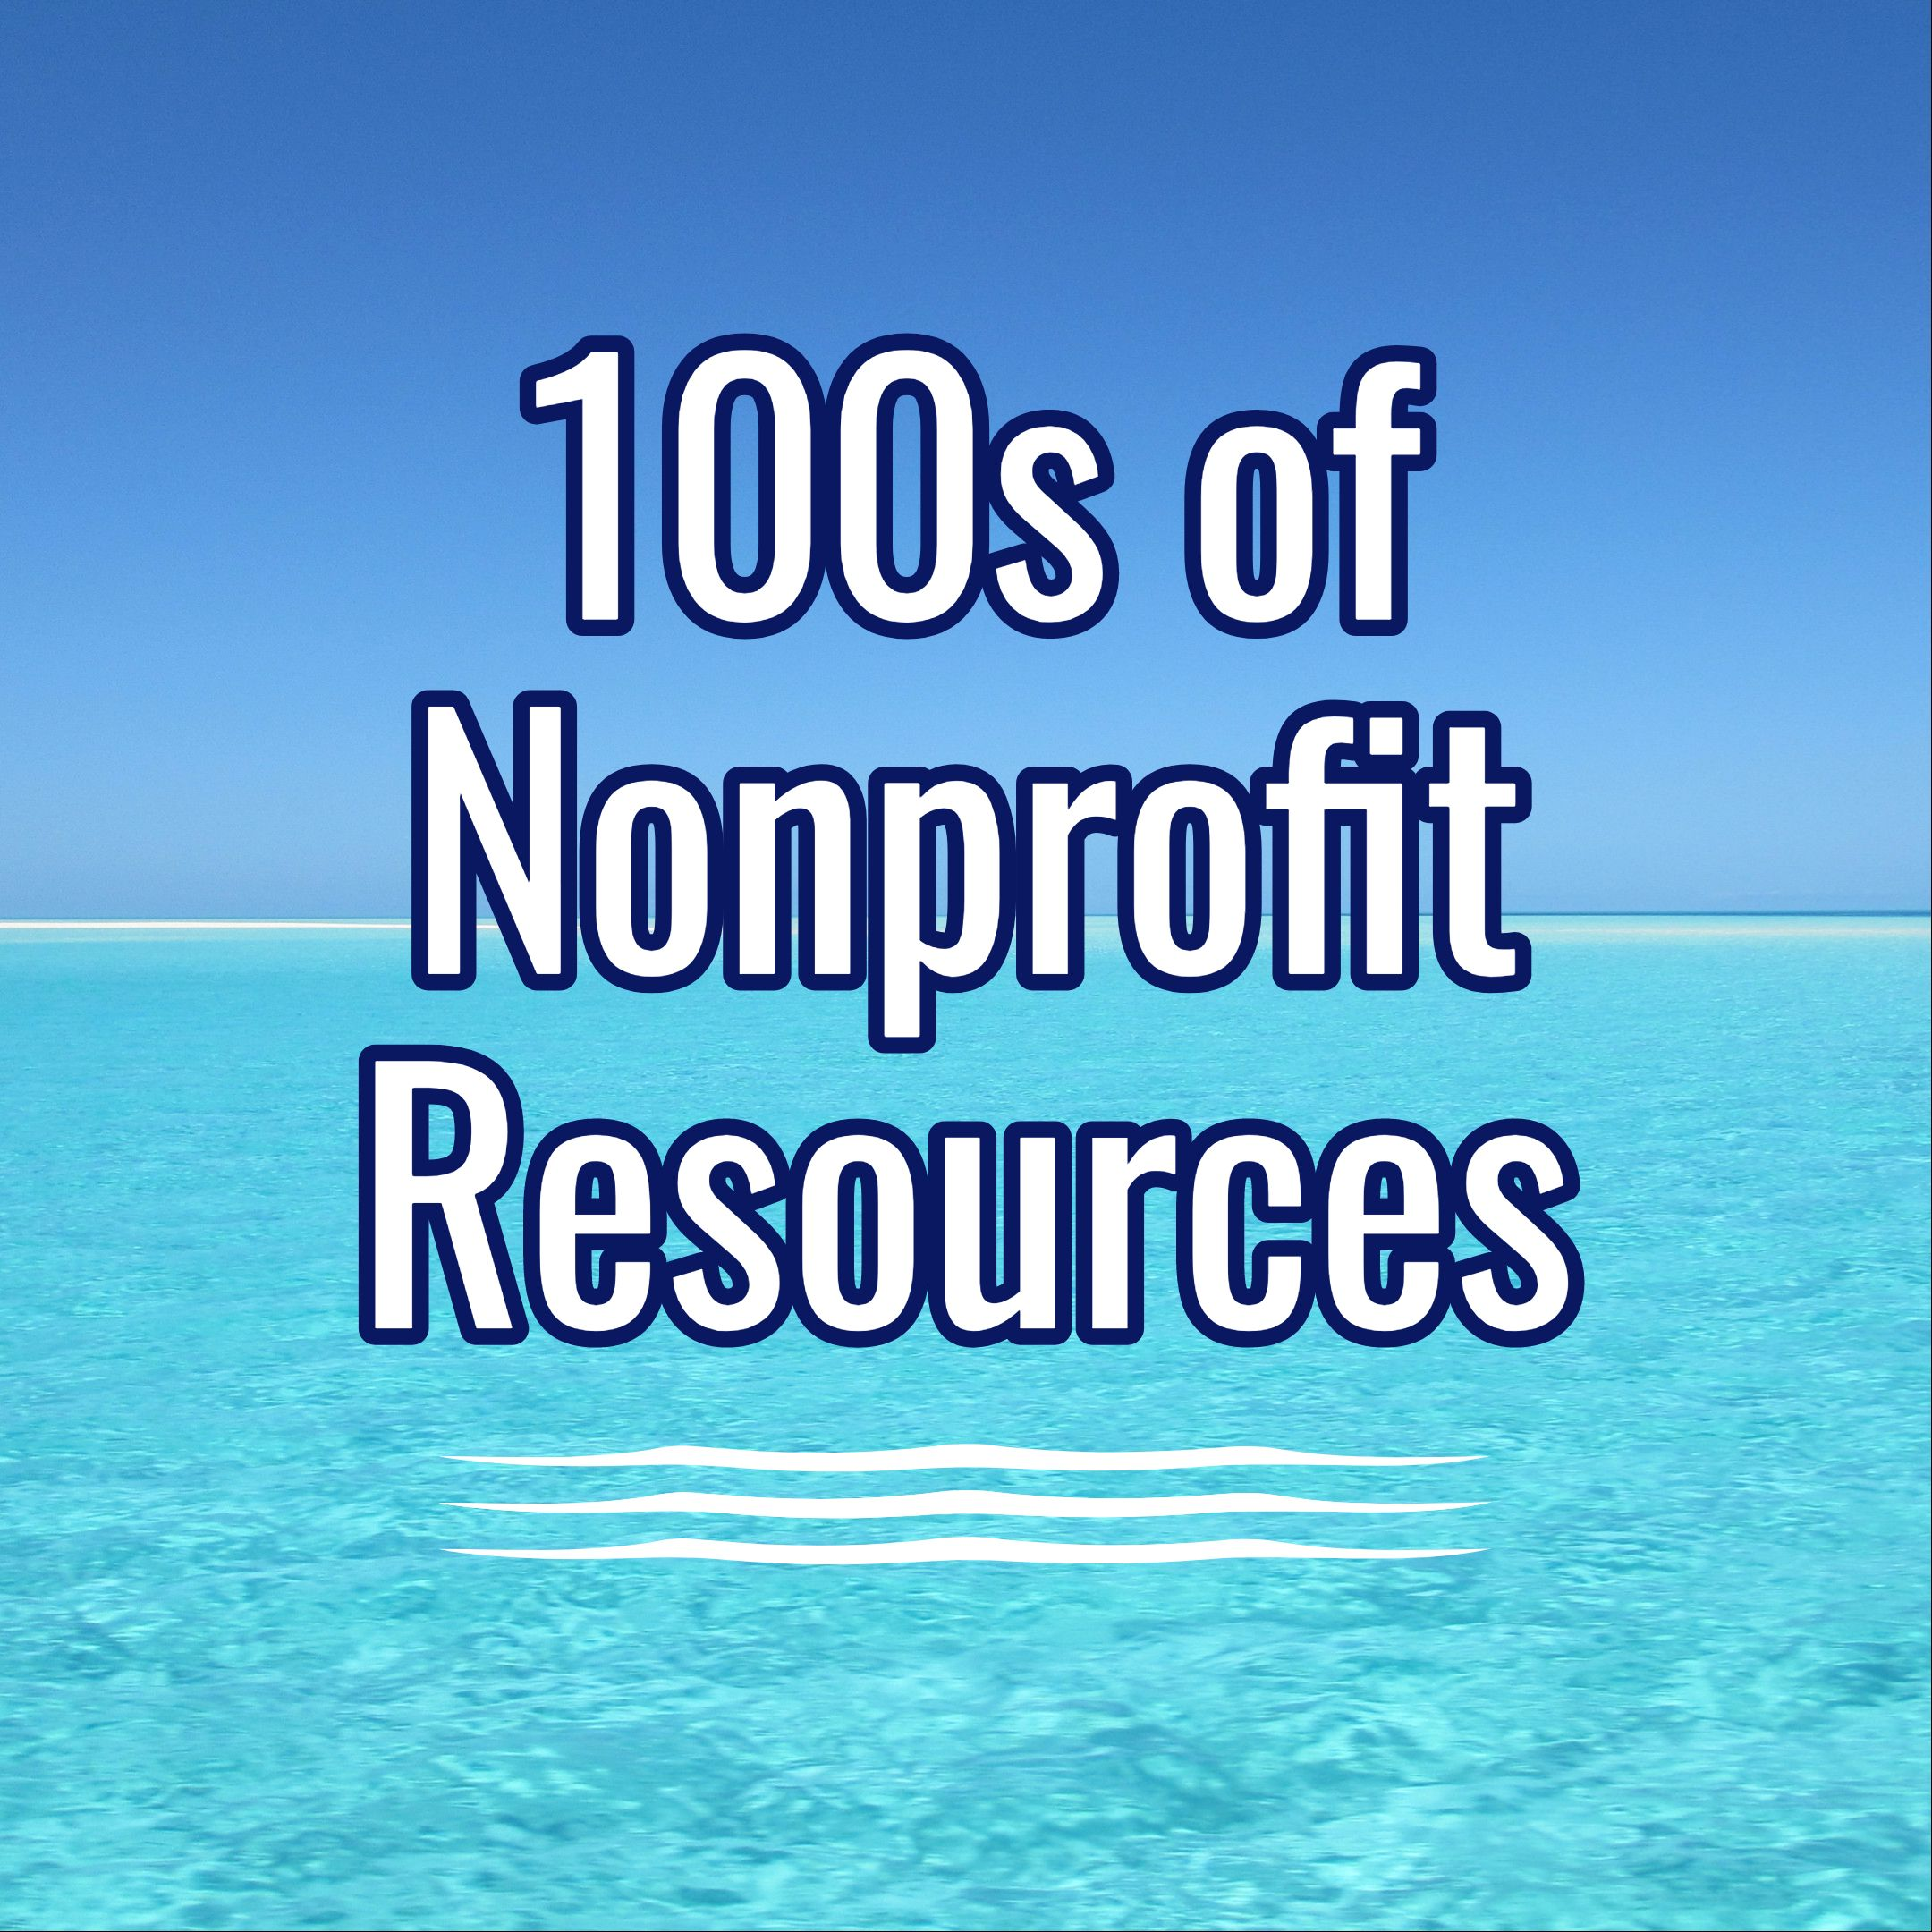 Nonprofit Information - Tips for Nonprofit Founders